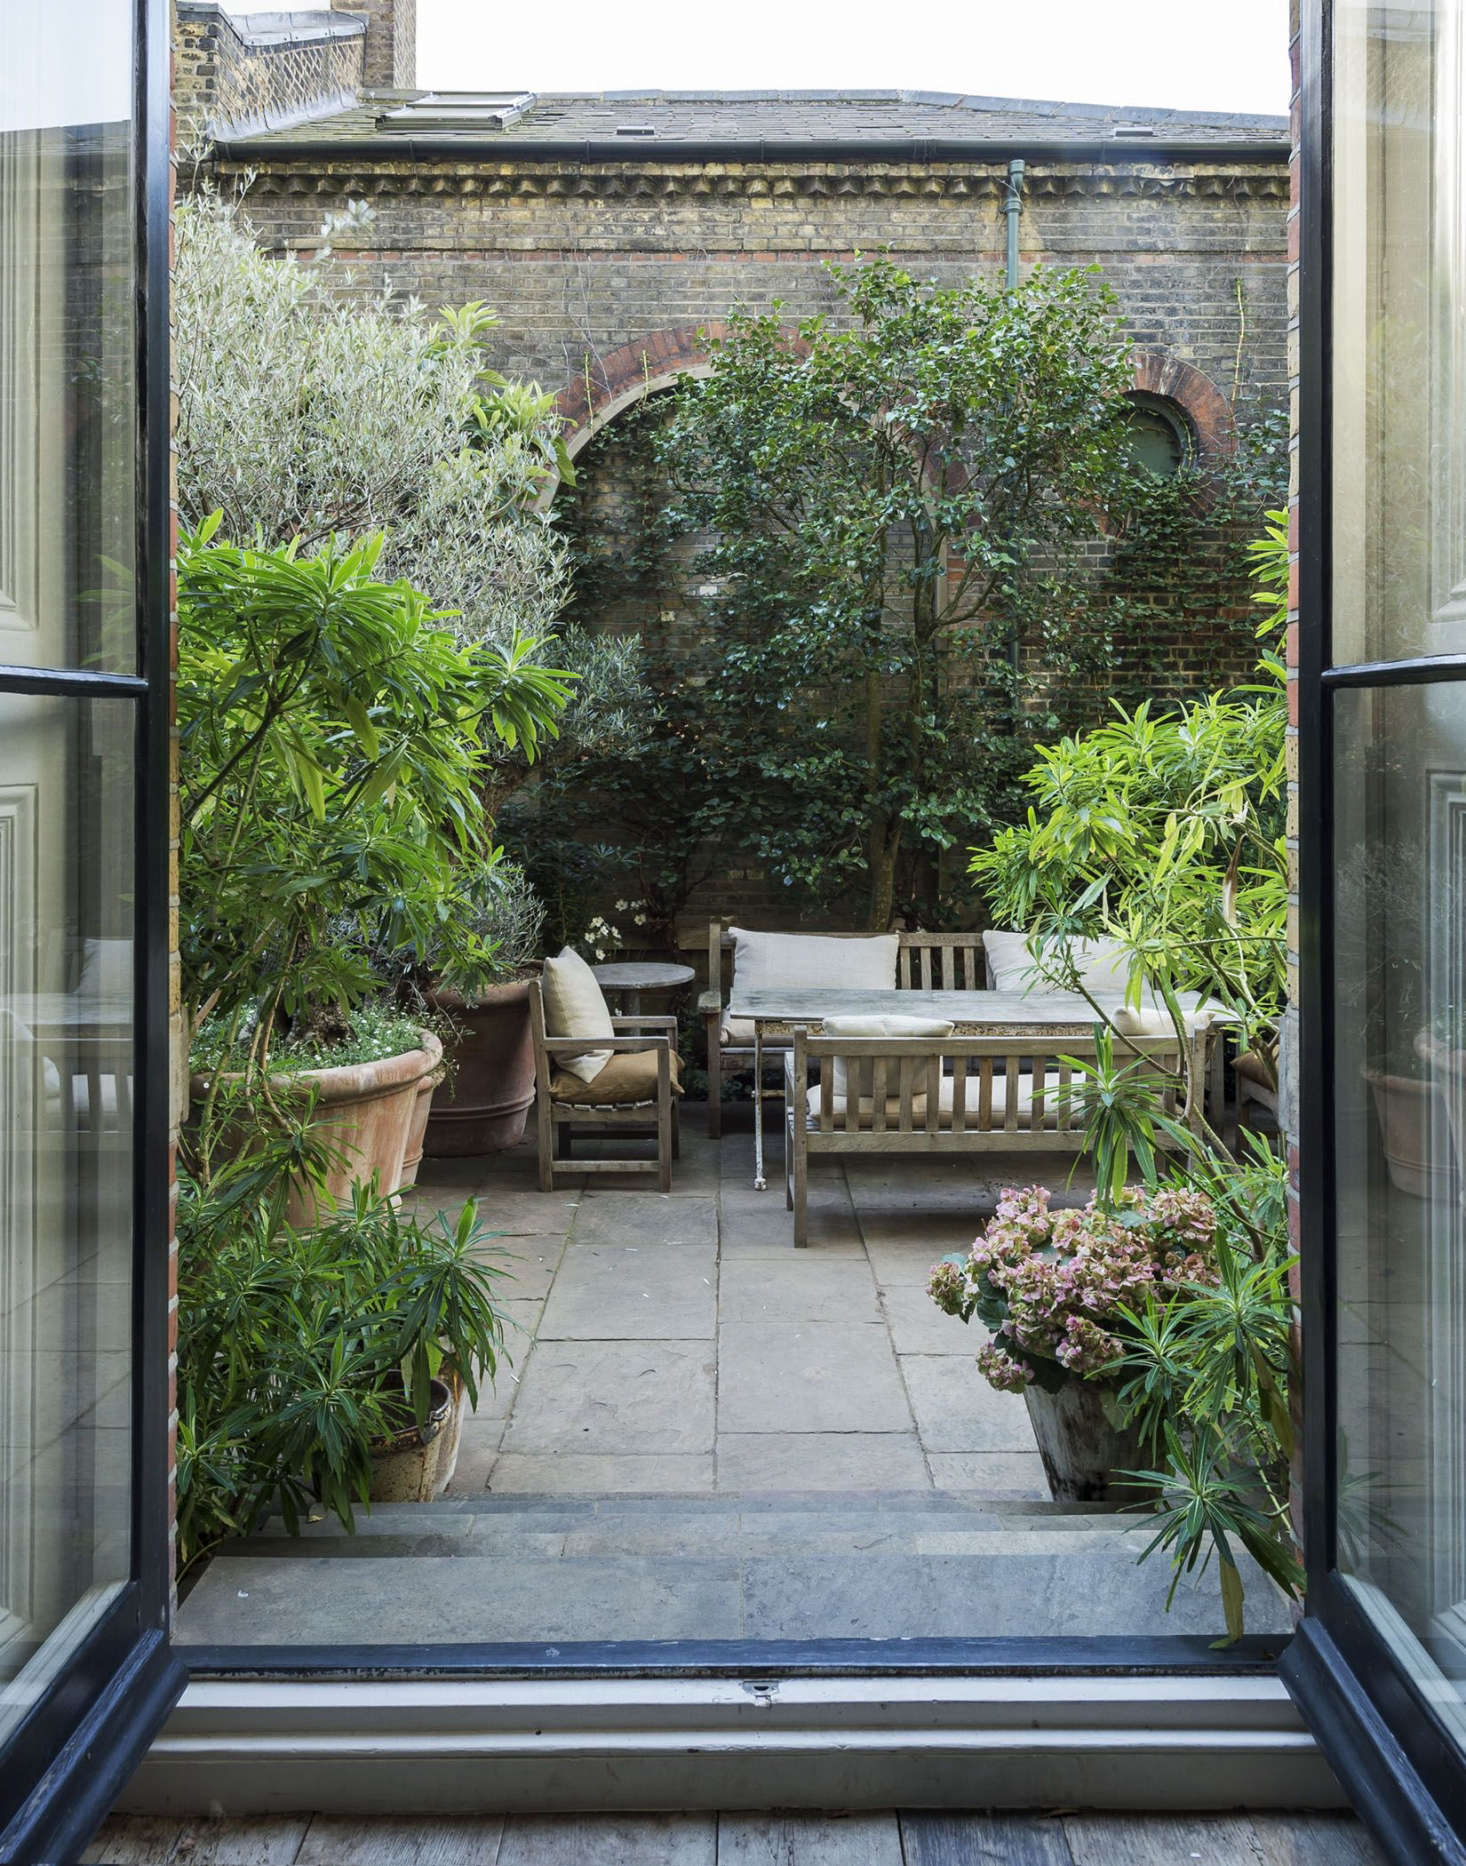 French doors in the living room lead to the walled garden. The terrace is paved with old Yorkstone (a type of sandstone quarried in Yorkshire) and flanking the doorway are two evergreen euphorbia shrubs, which resemble rhododendrons. A newish variety, Euphorbia x pasteuriihas fragrant yellow honey-scented flowers in late spring.